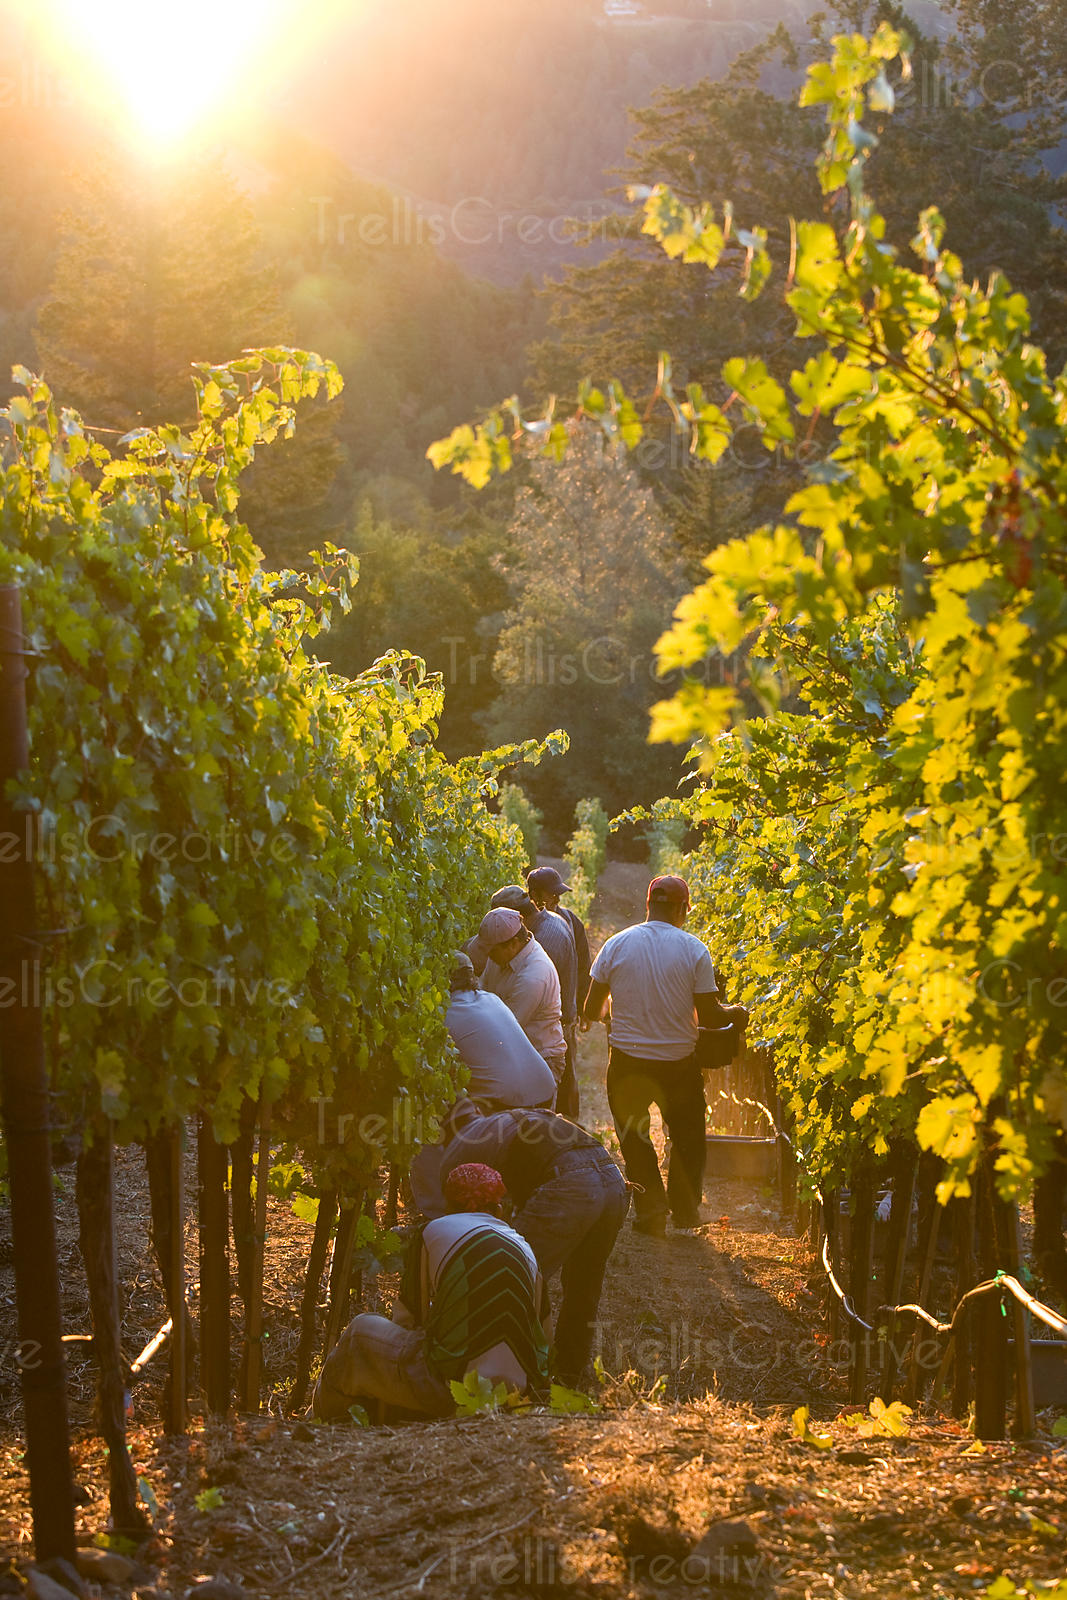 Latino workers harvest grapes on a steep mountain vineyard at sunrise